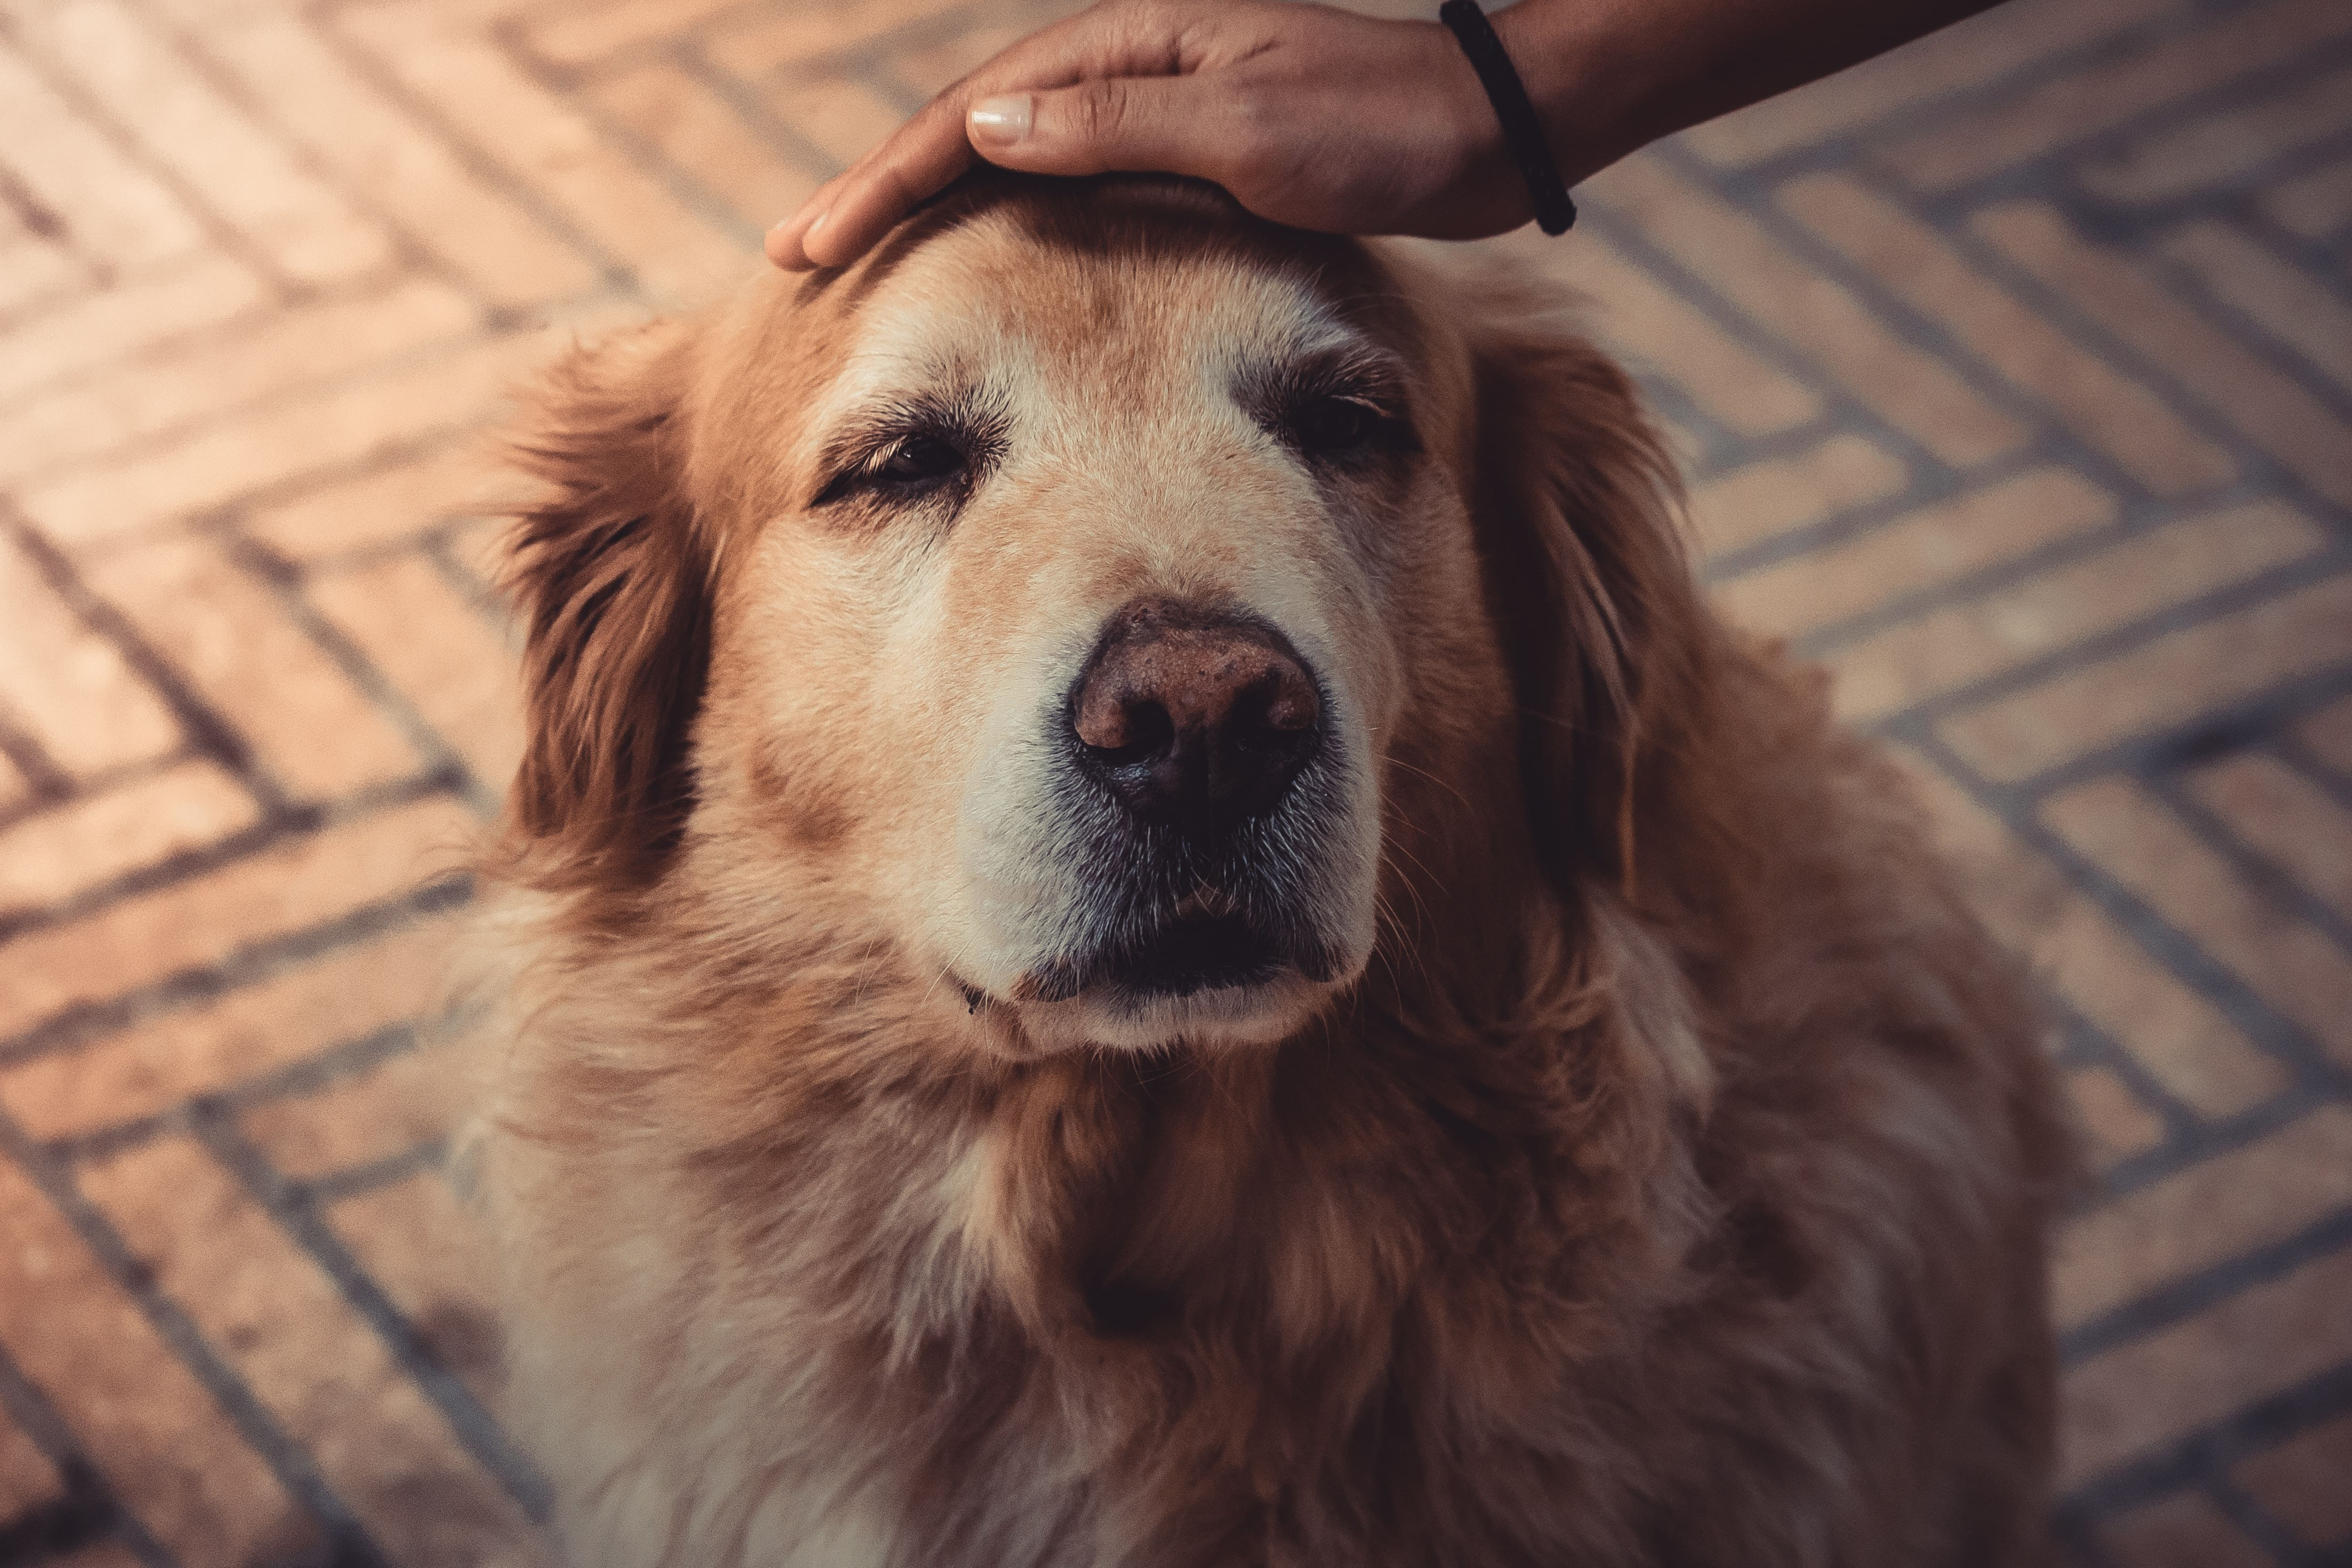 Old Golden Retriever receiving pets on the head